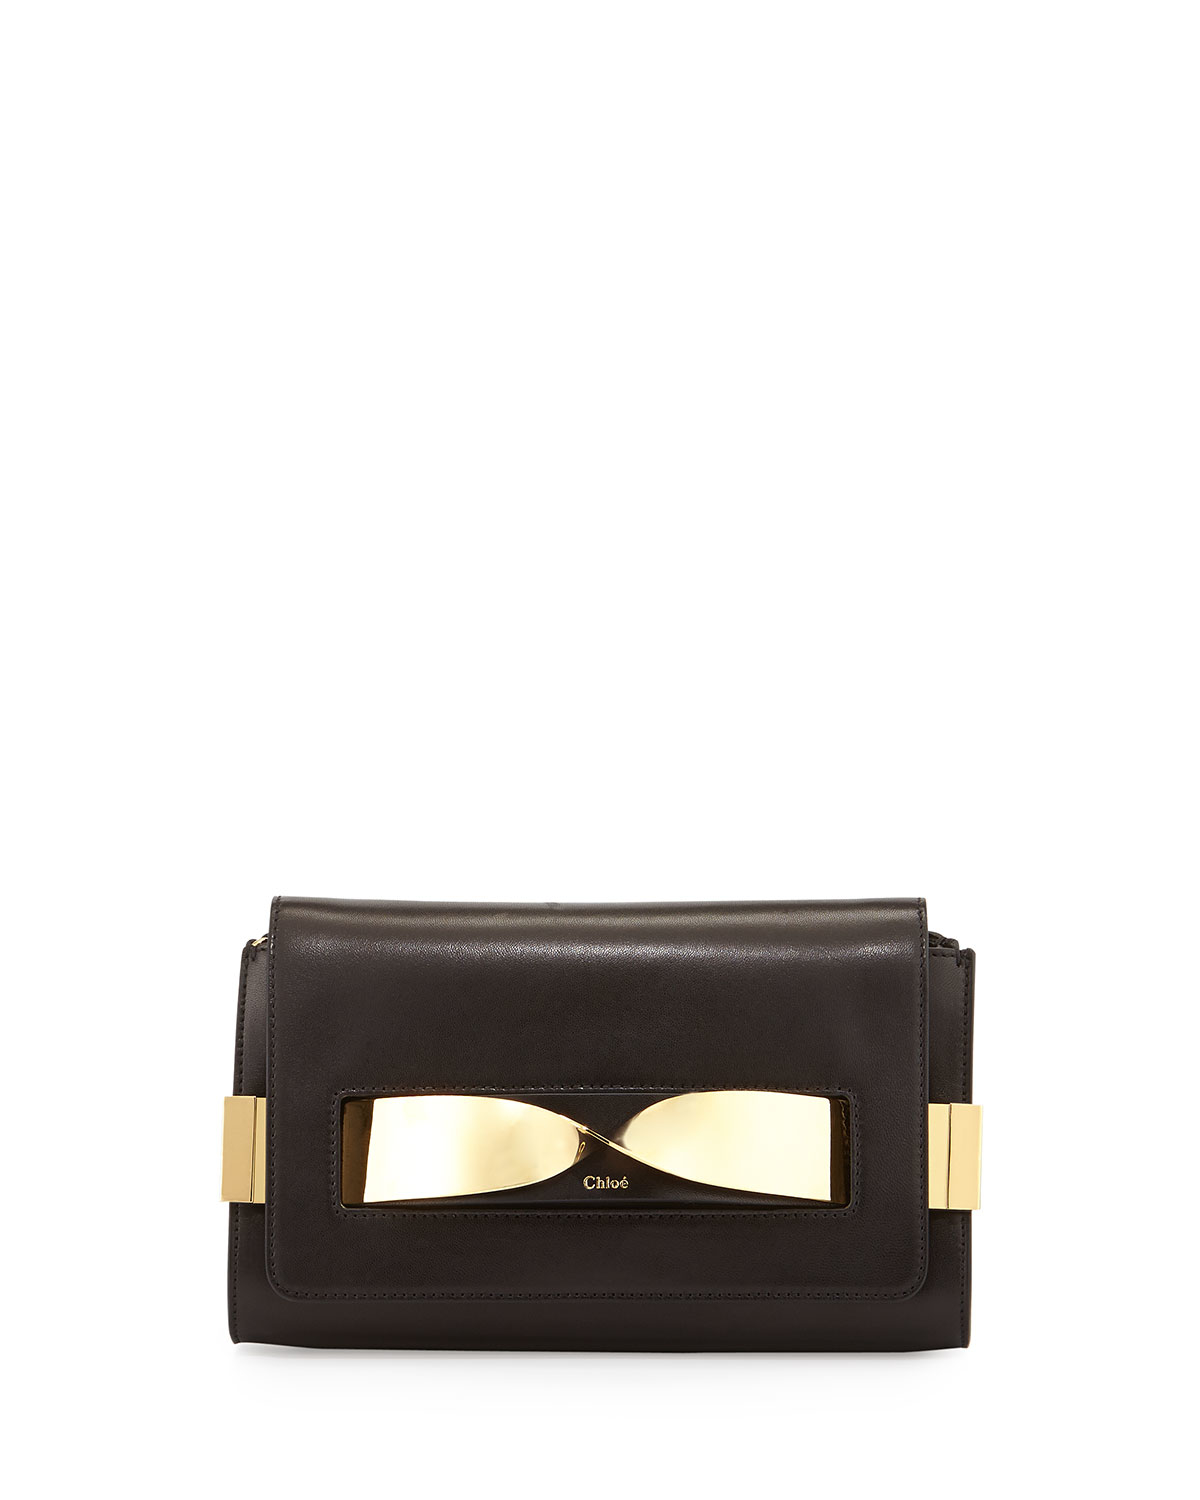 Chlo�� Elle Medium Chain Clutch Bag in Black | Lyst